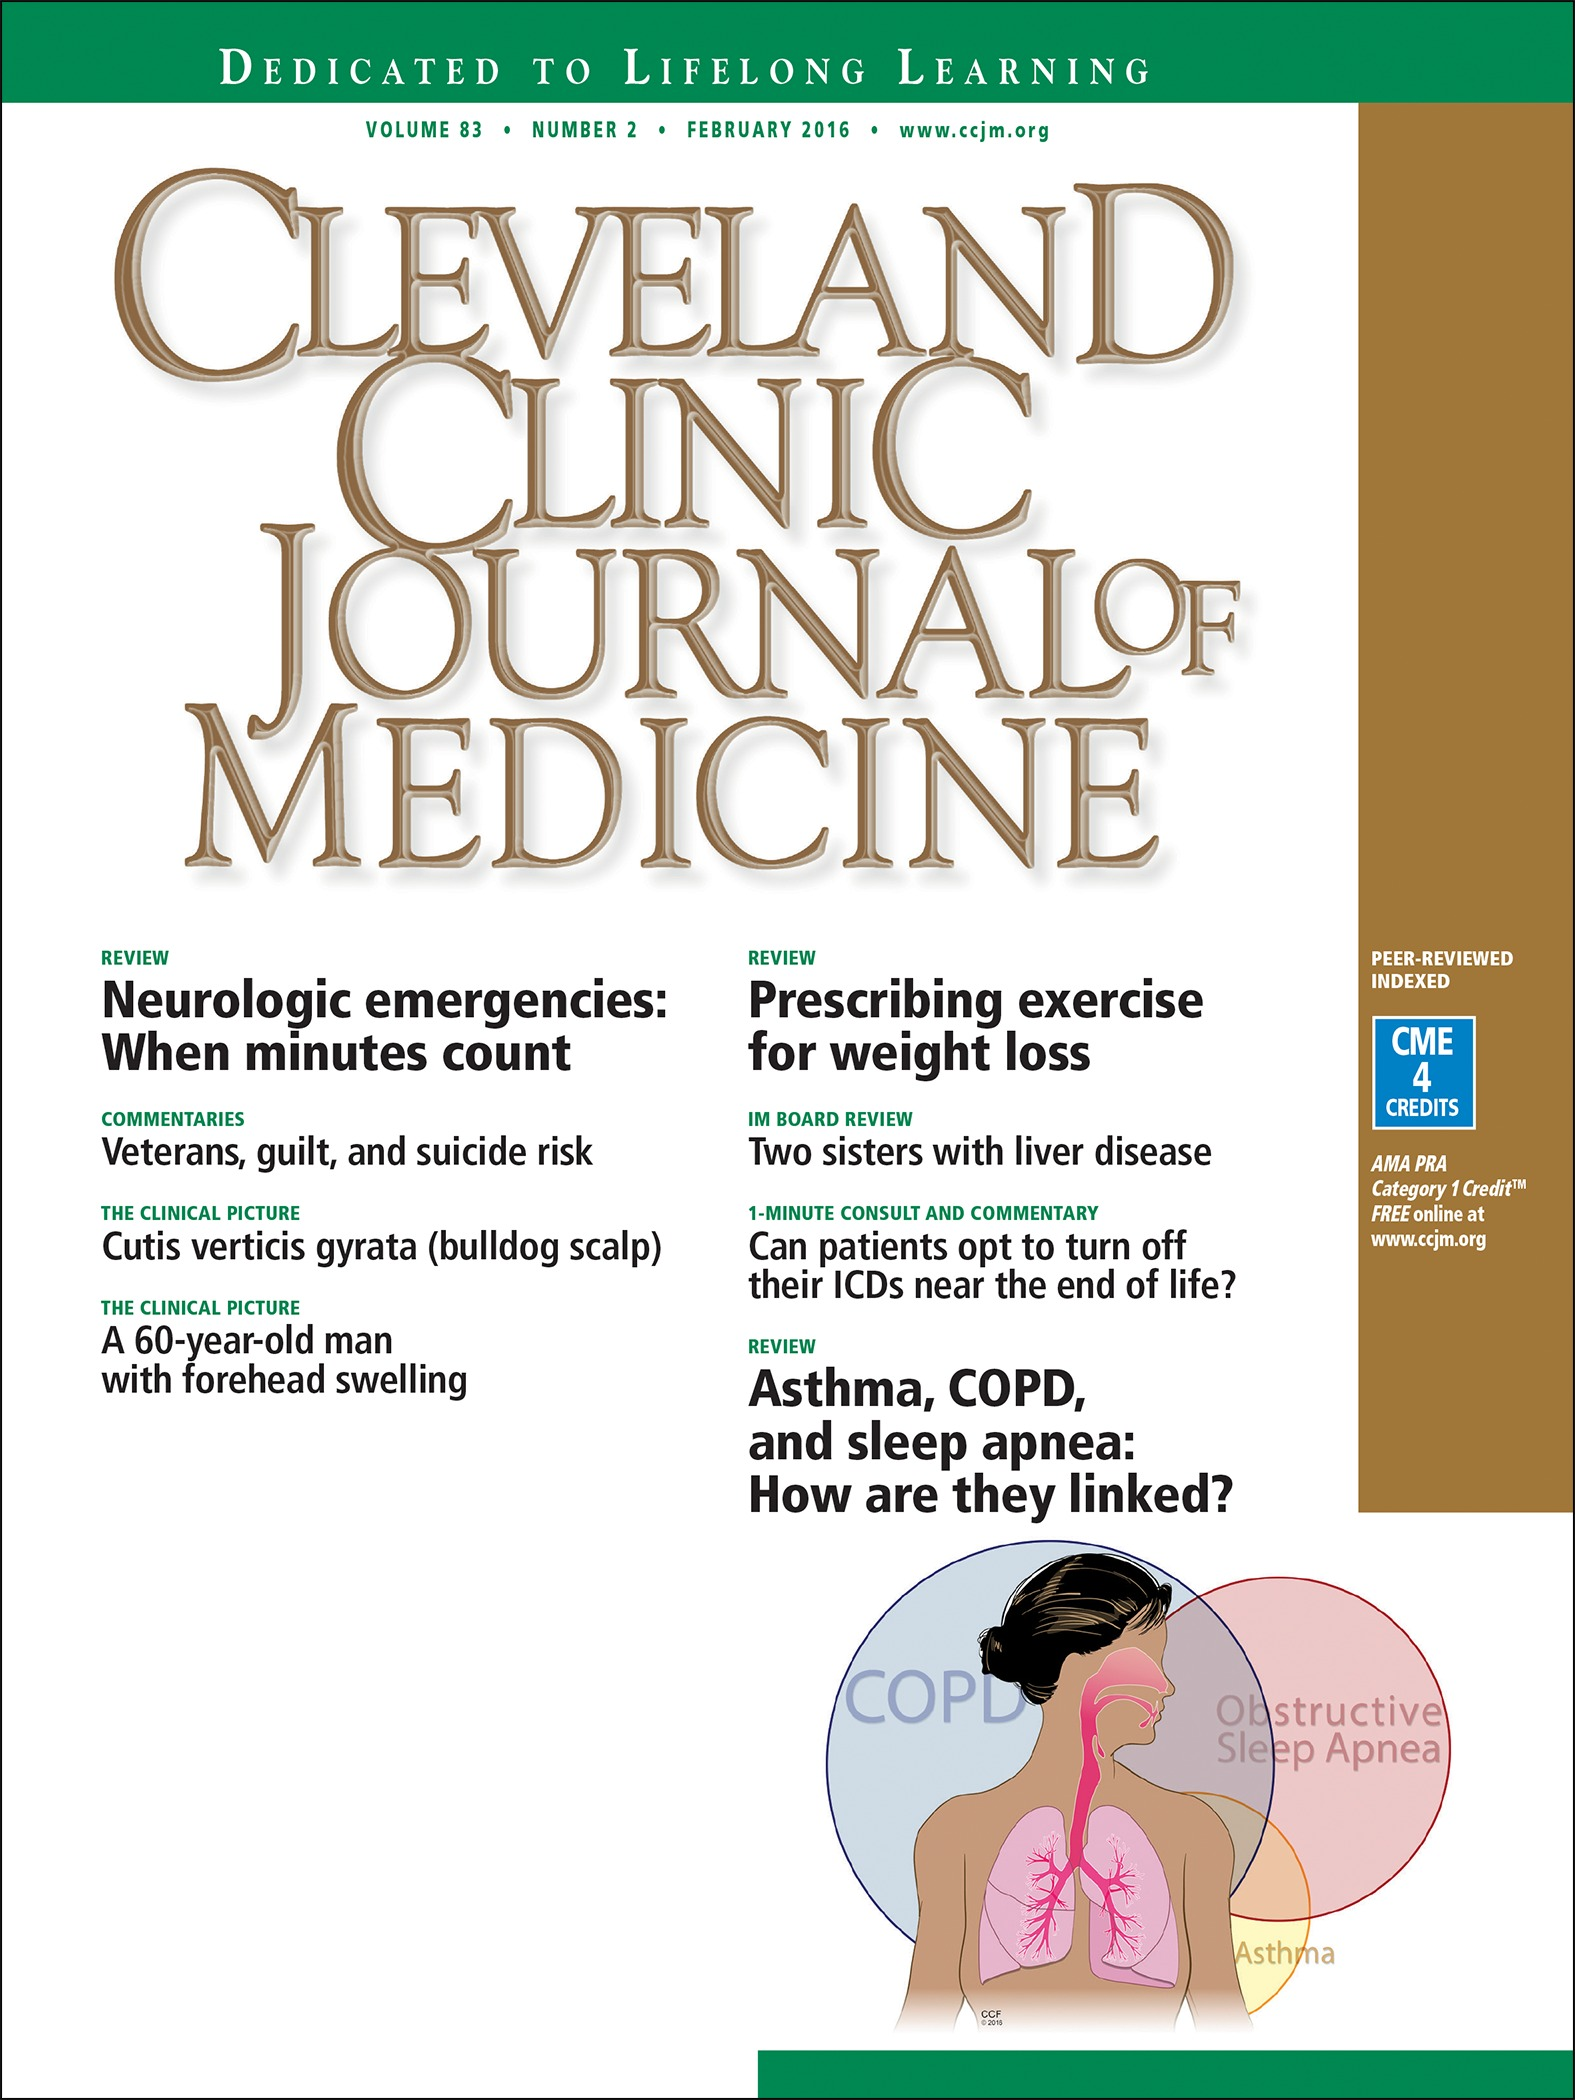 Prescribing Exercise To Help Your Patients Lose Weight   Cleveland Clinic  Journal Of Medicine